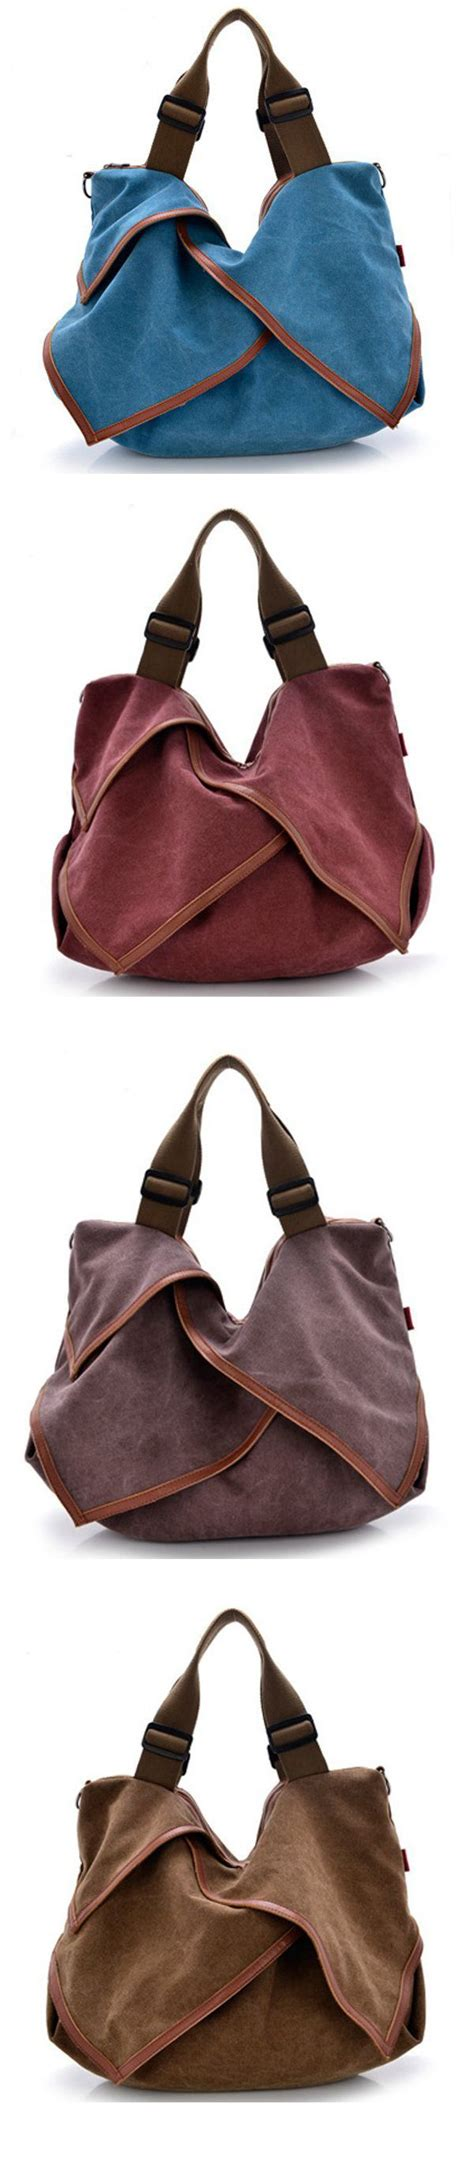 Molly Satchel 703 5933 best images about handbags and purses on